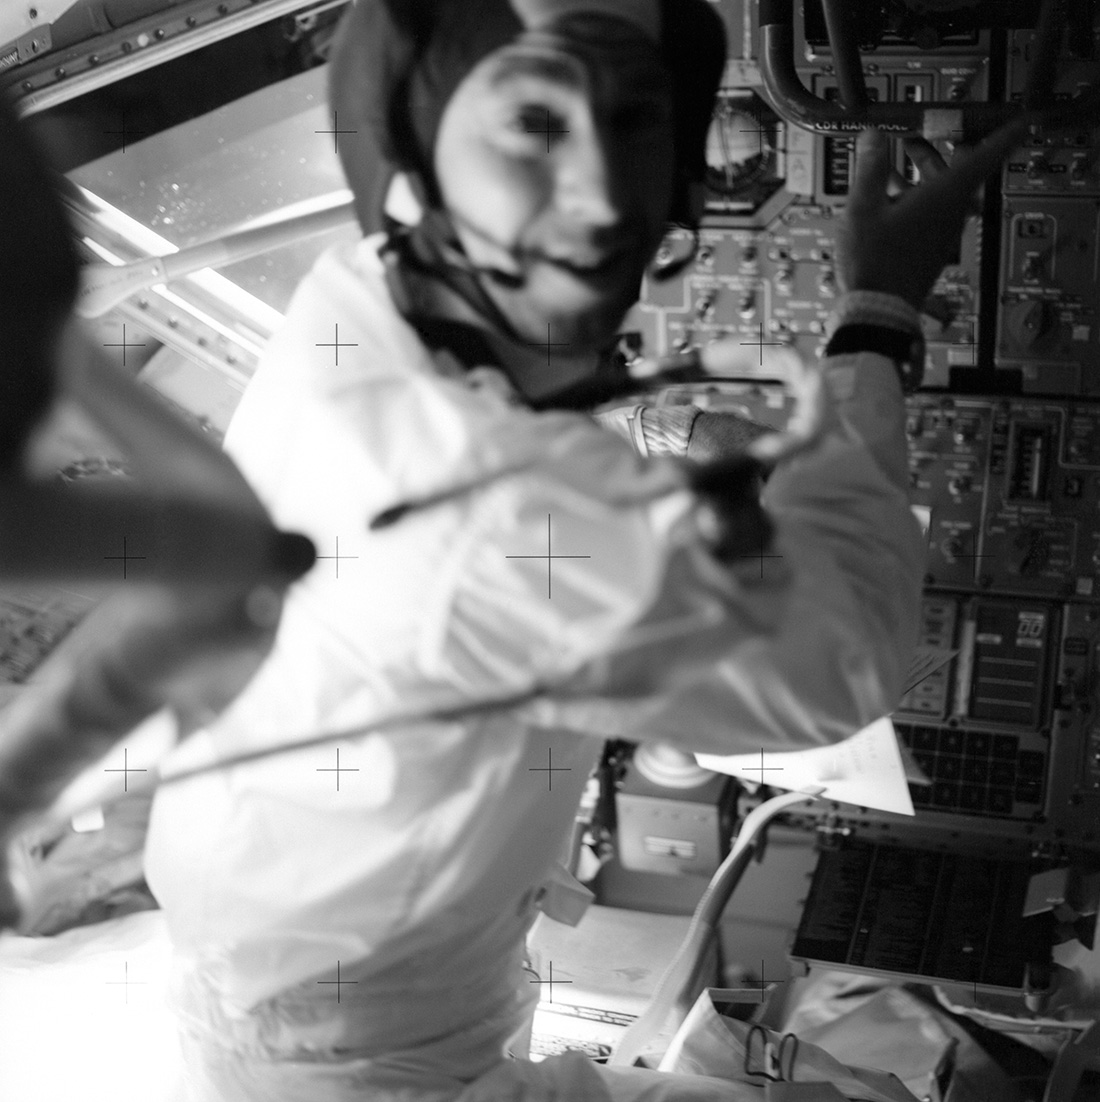 Astronaut James Lovell at his position in the Lunar Module